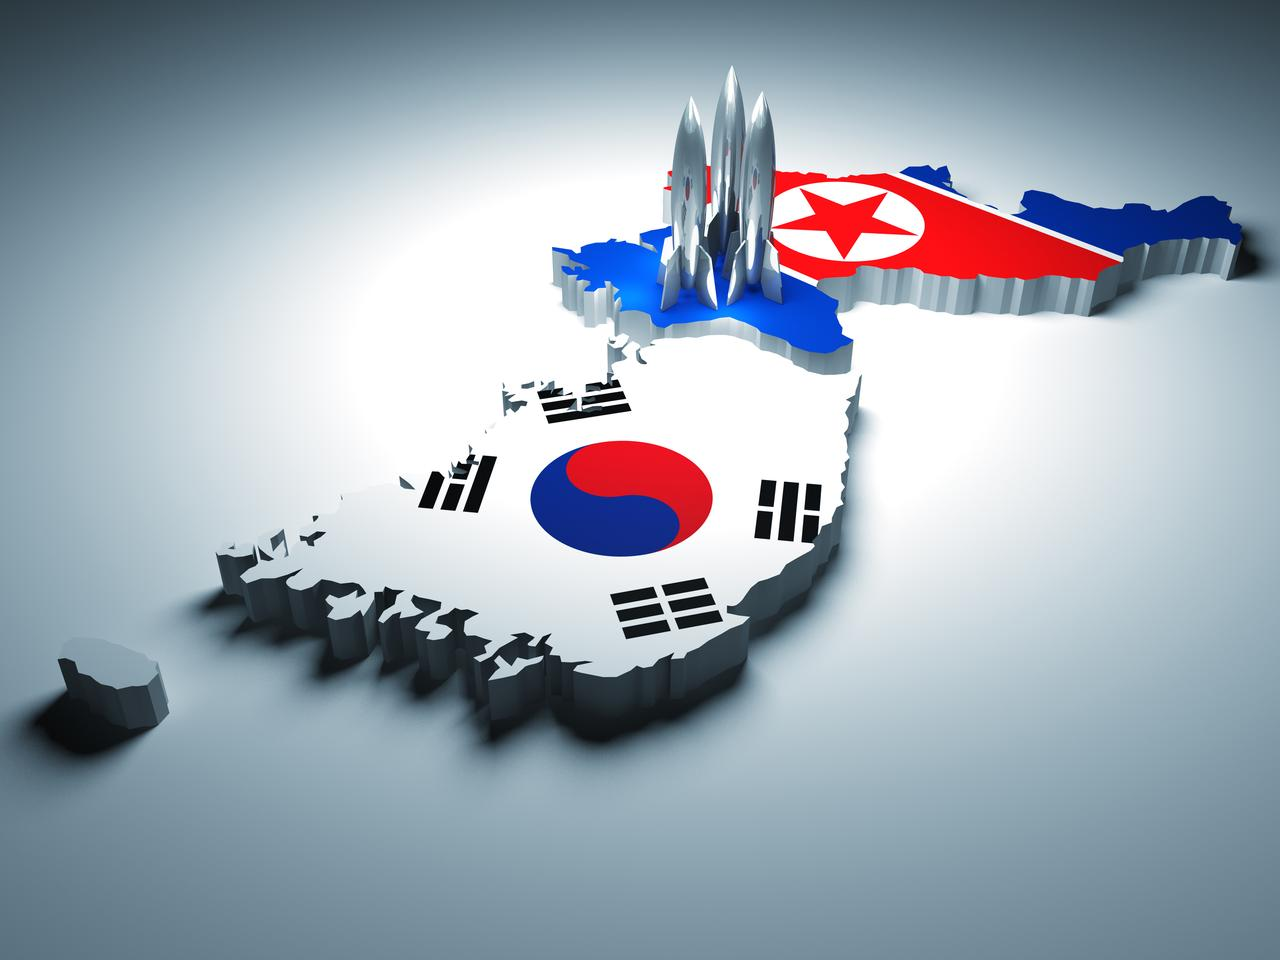 South Korea is reportedly looking into crippling North Korea's nuclear program, using a Stuxnet-like virus (Image: Shutterstock)